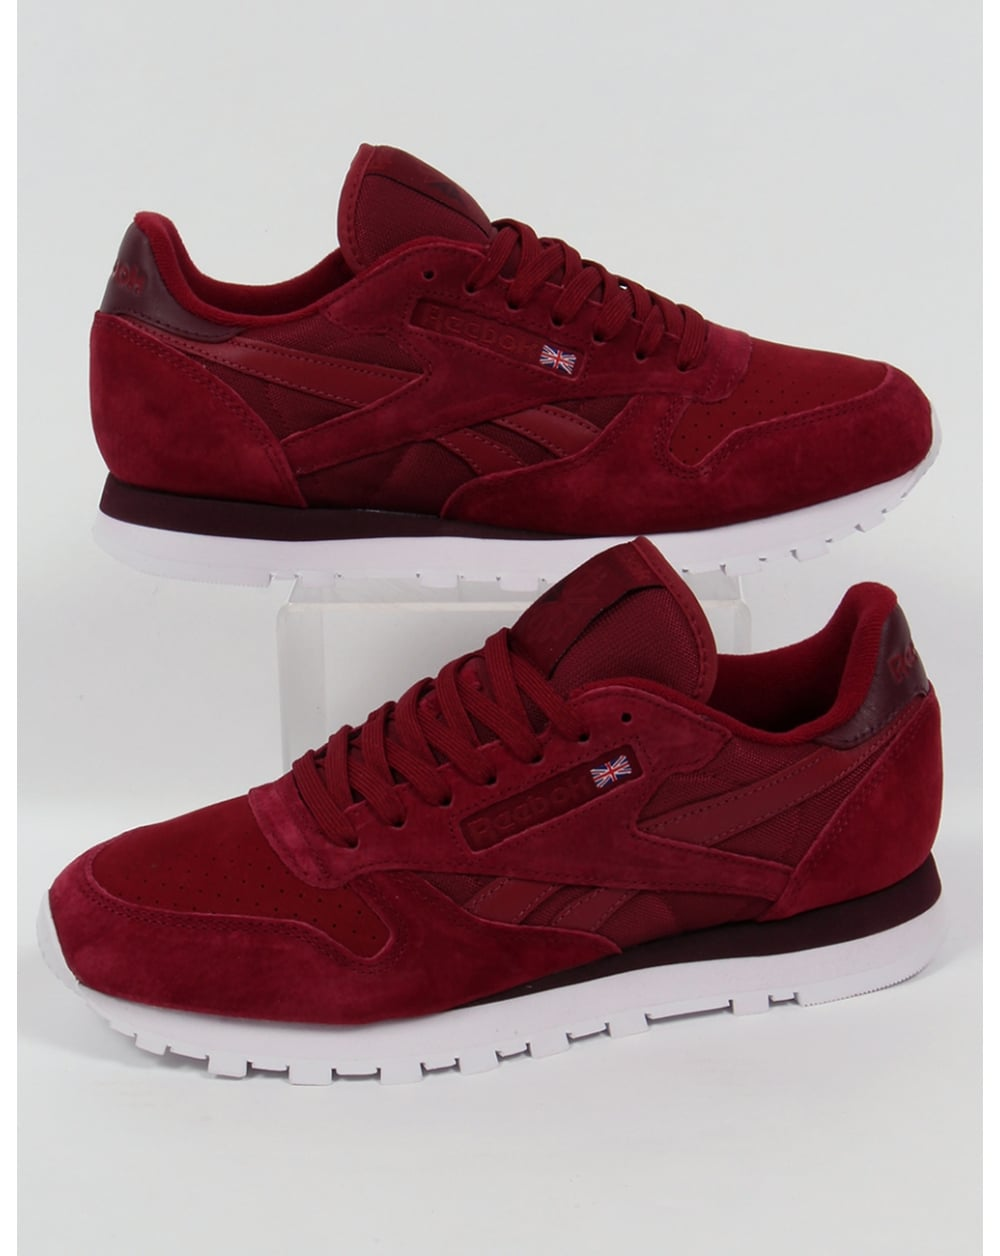 a4e68f46da6 reebok trainers red cheap   OFF48% The Largest Catalog Discounts